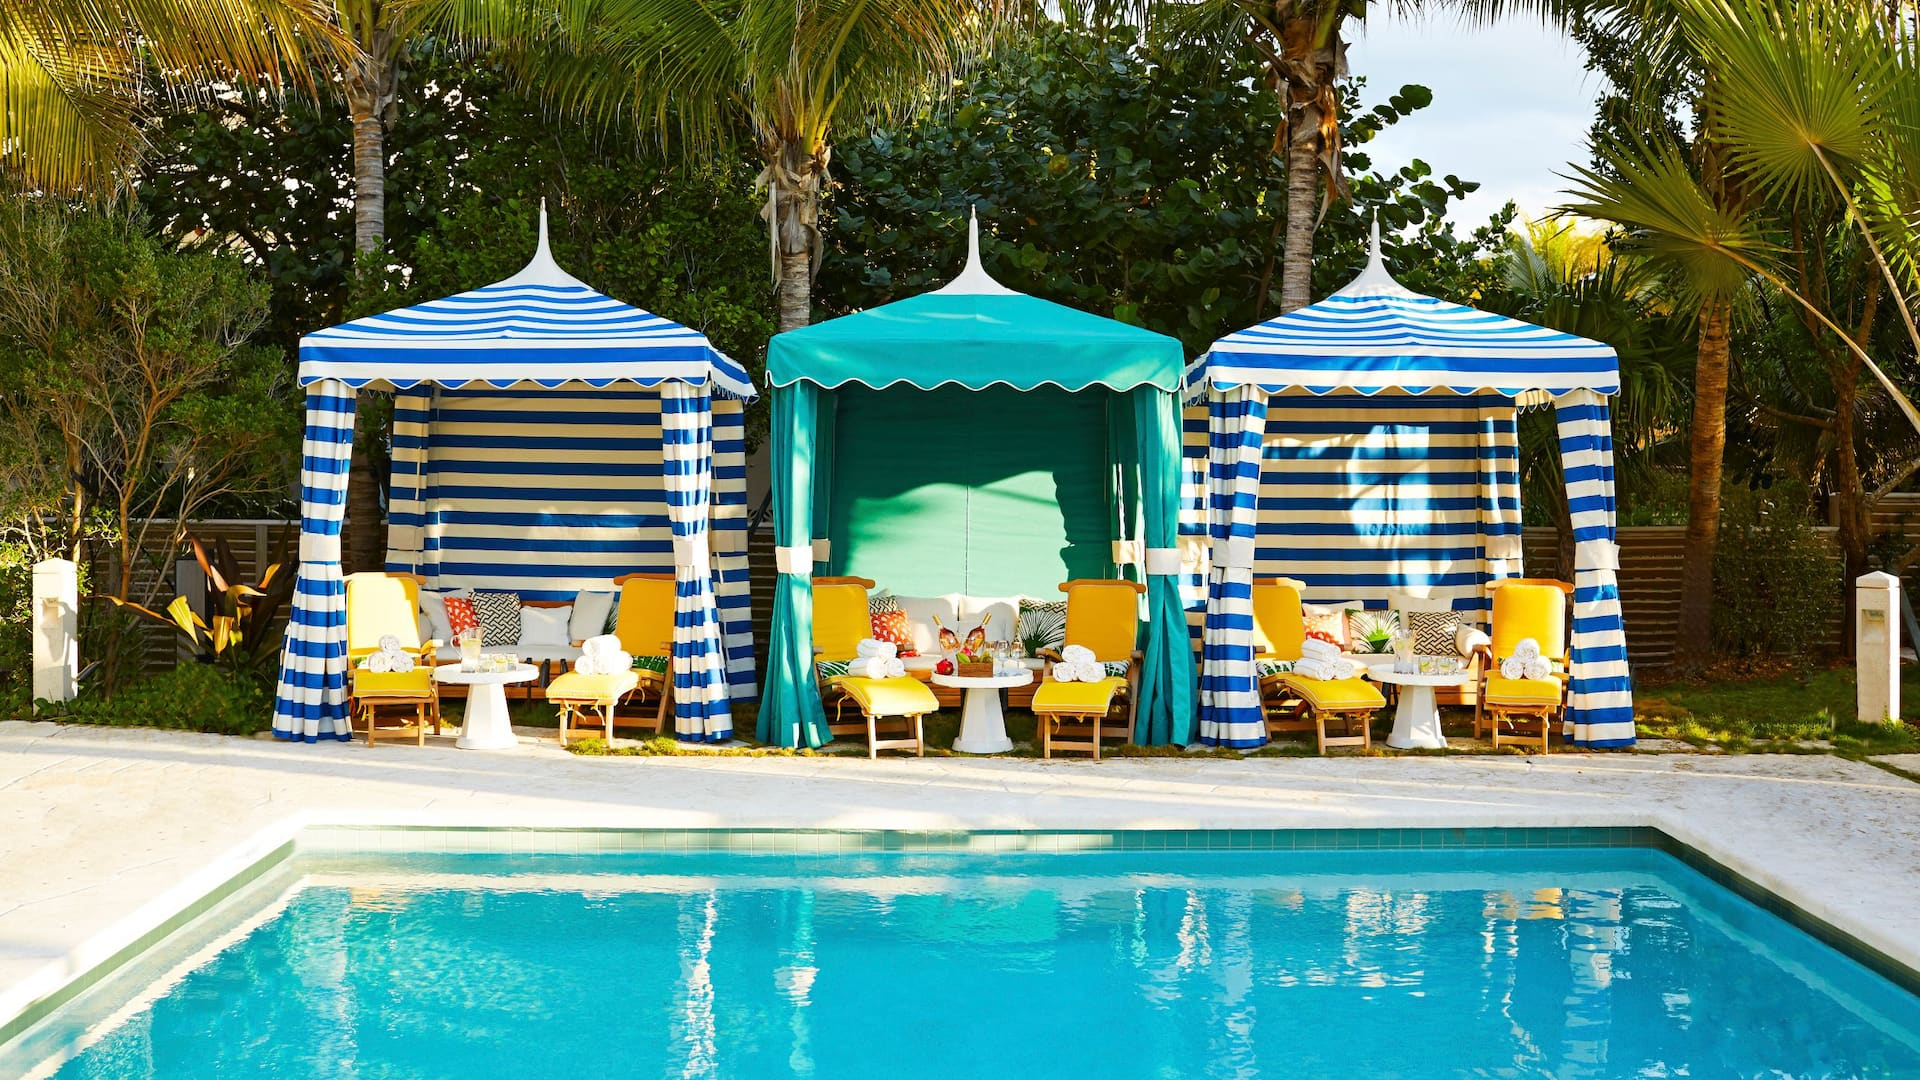 Cabanas by the Swimming Pool